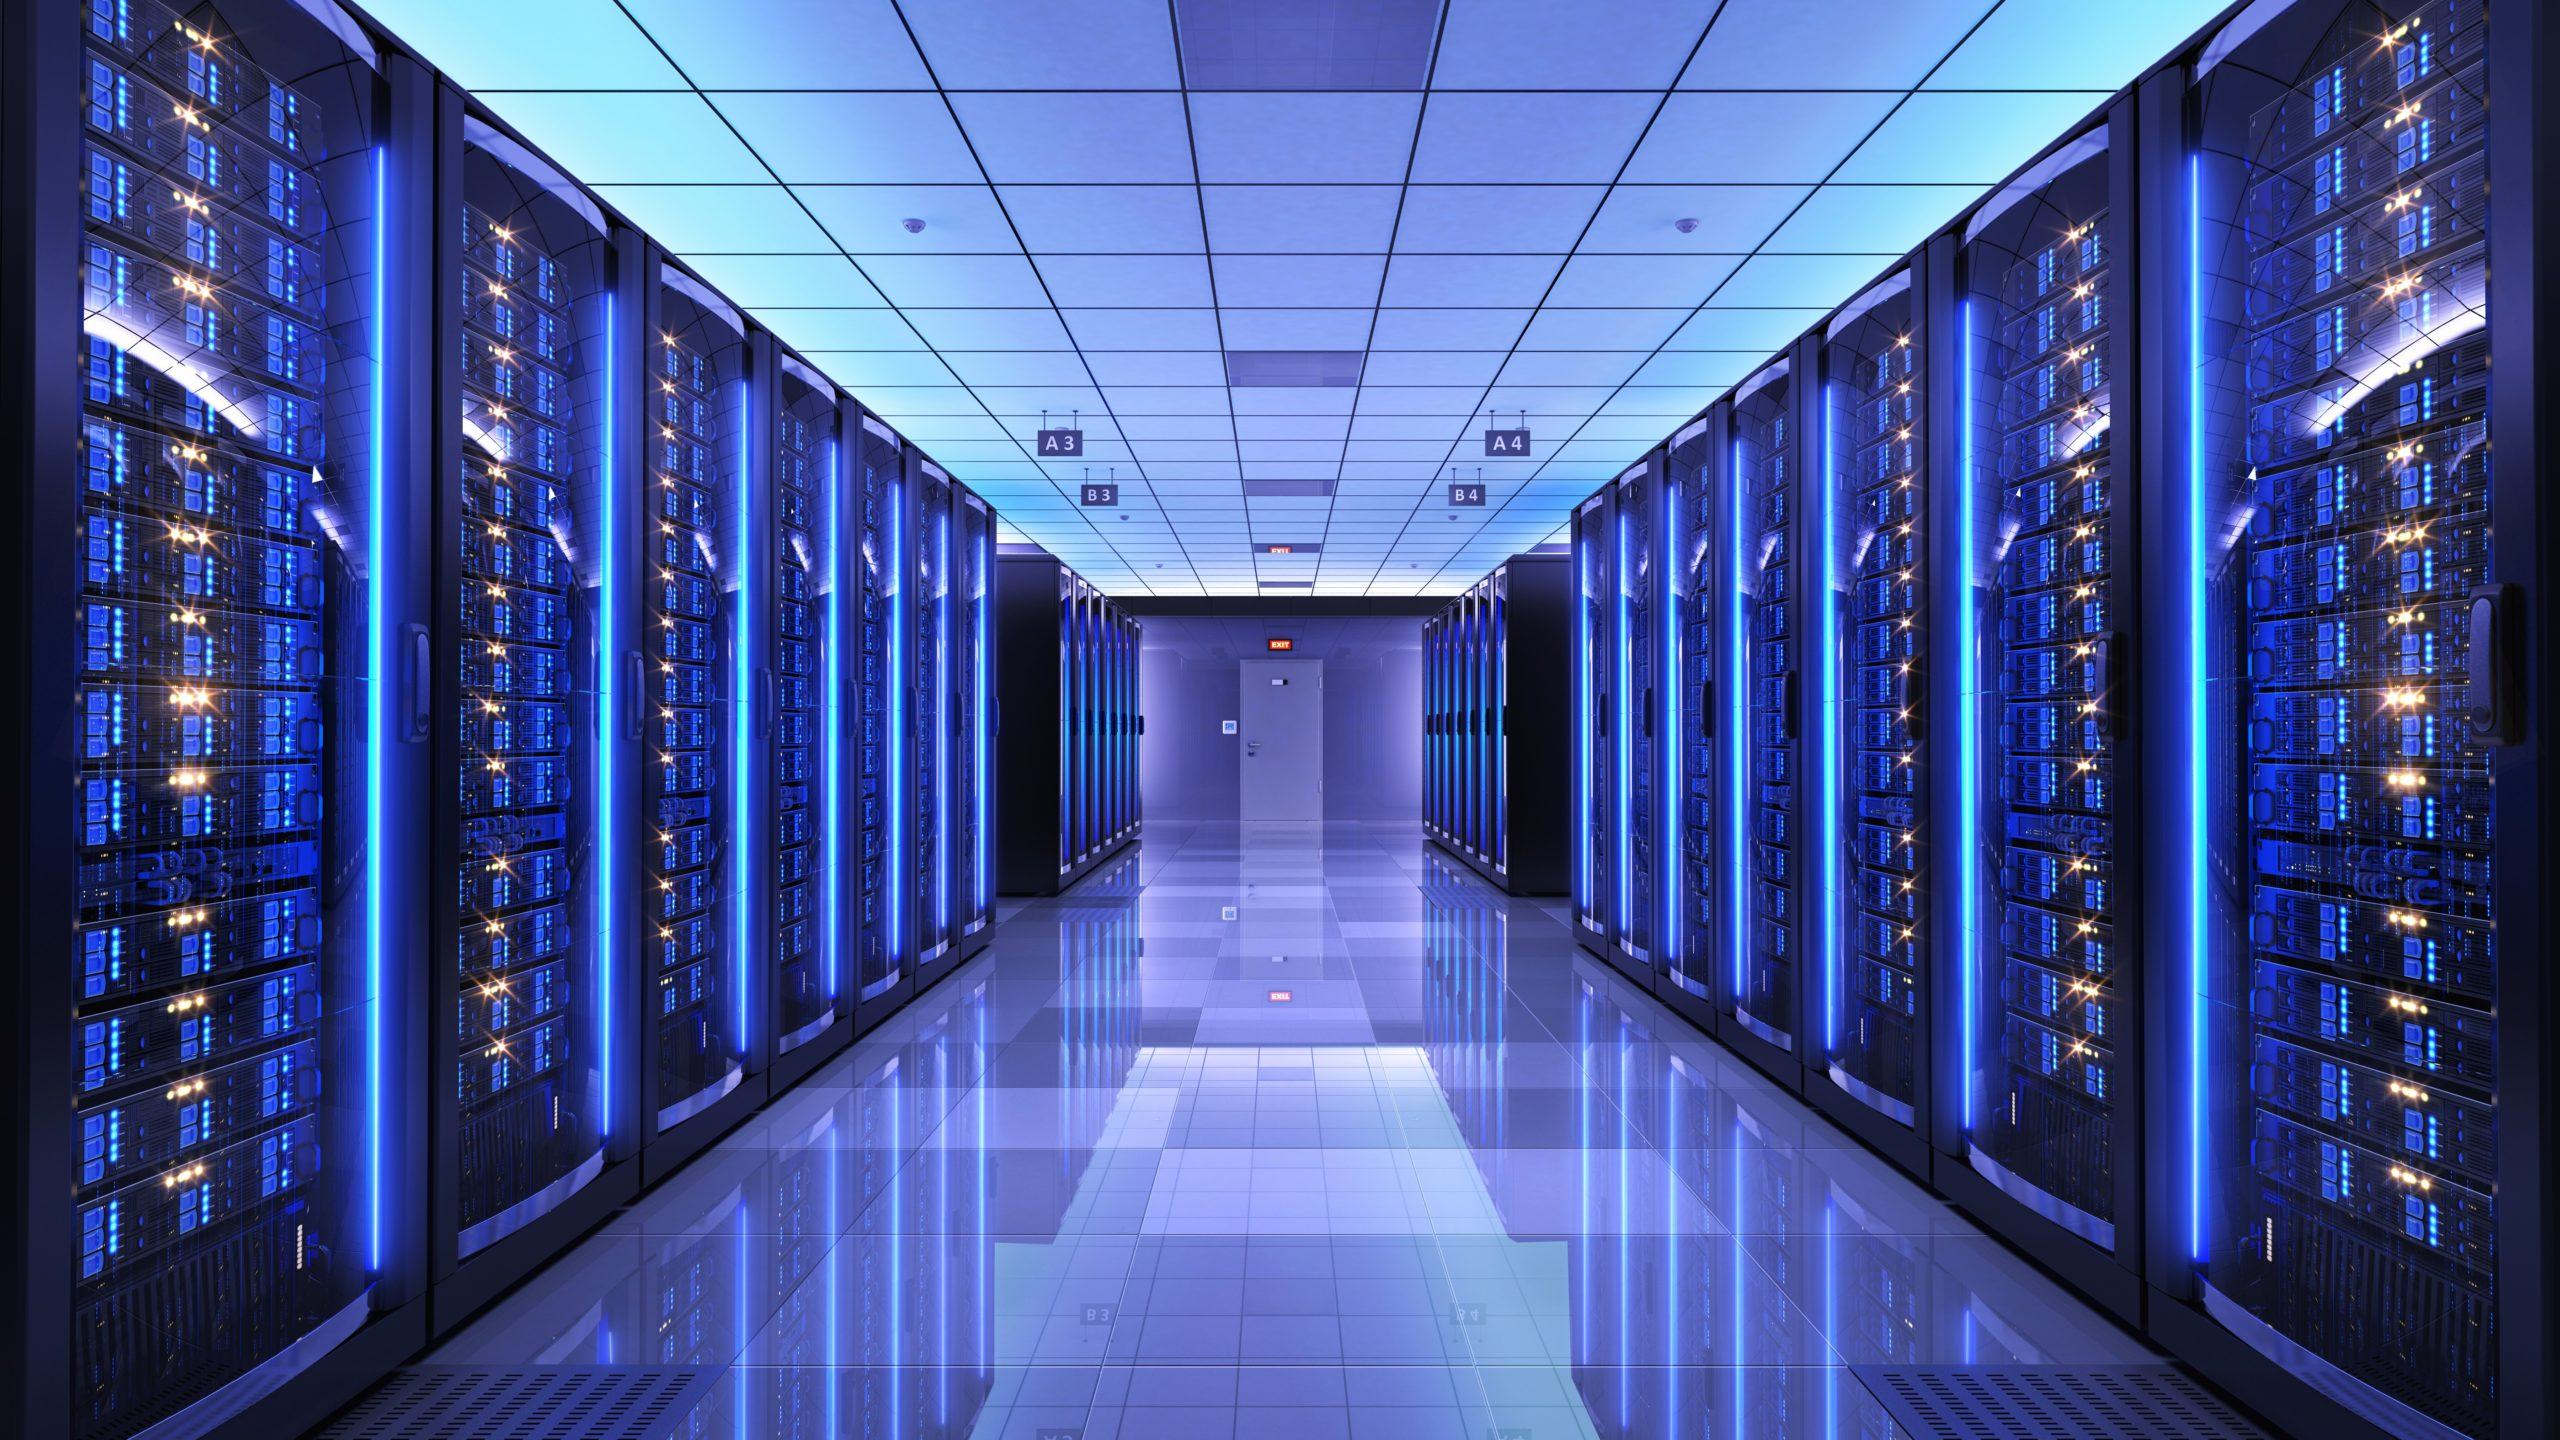 Keeping Hyperscale Data Centers Safe from Security Threats